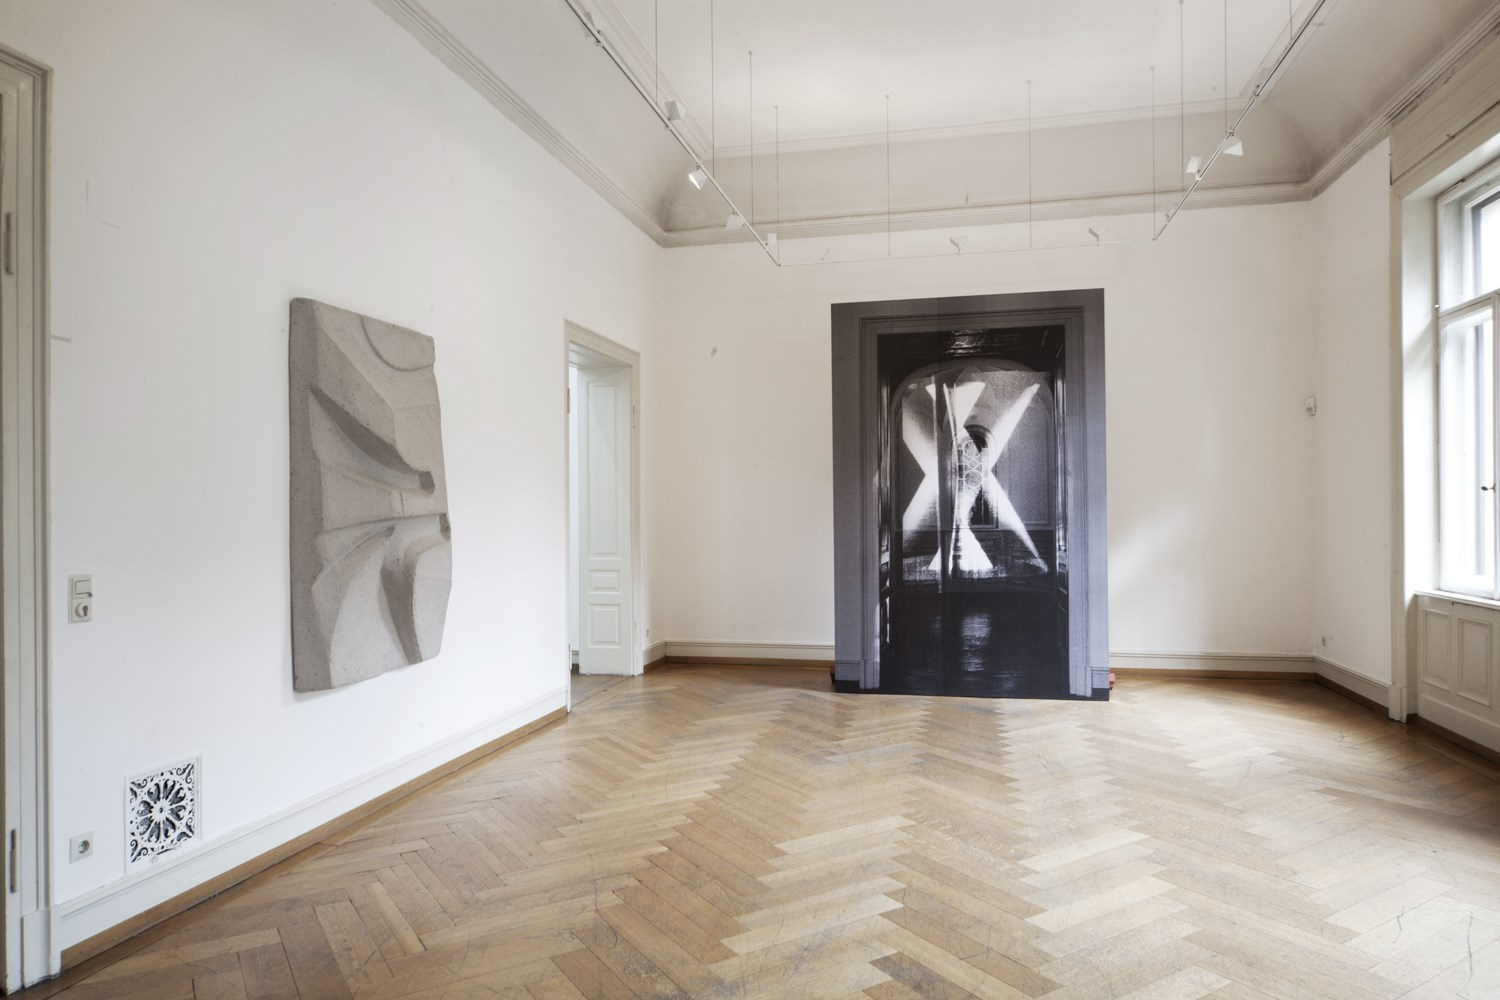 negative cinema, 160 cm x 100 cm, papier mâché and wood, 2009; niche/two rods, 304 cm x 204 cm, b& w prints on wood<br />Installation view Villa Merkel